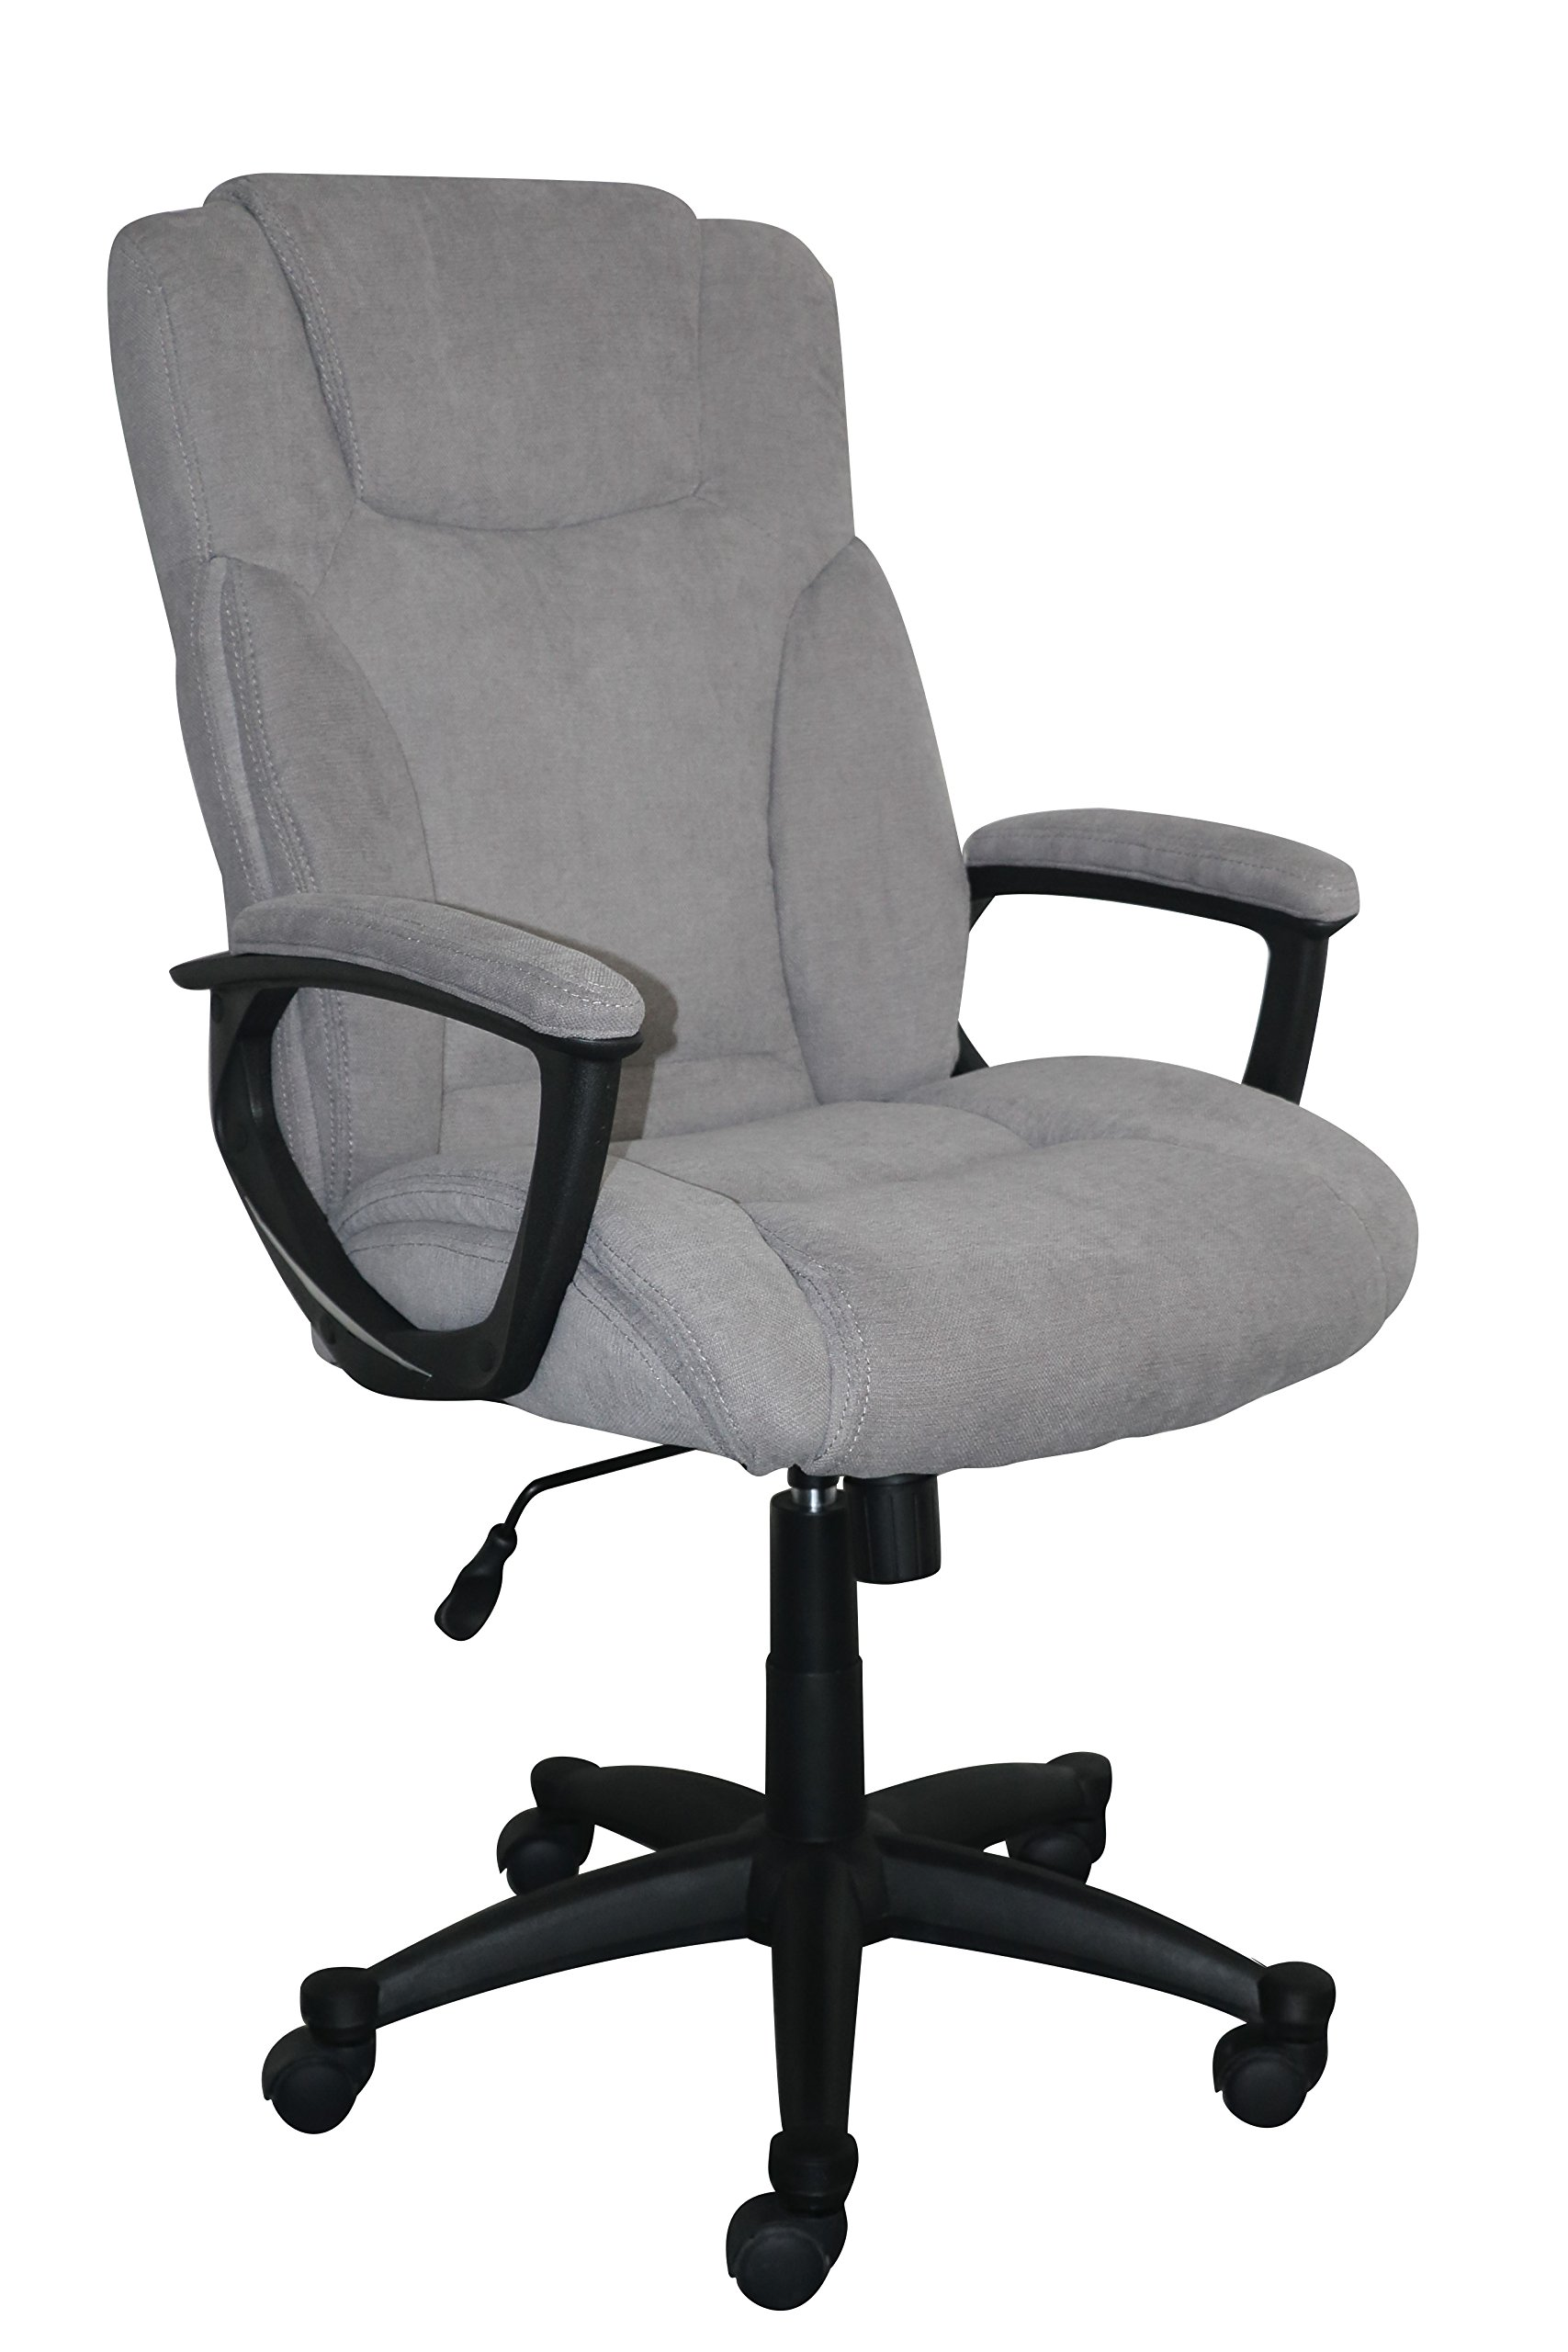 Serta Style Hannah II Office Chair, Harvard Gray Microfiber